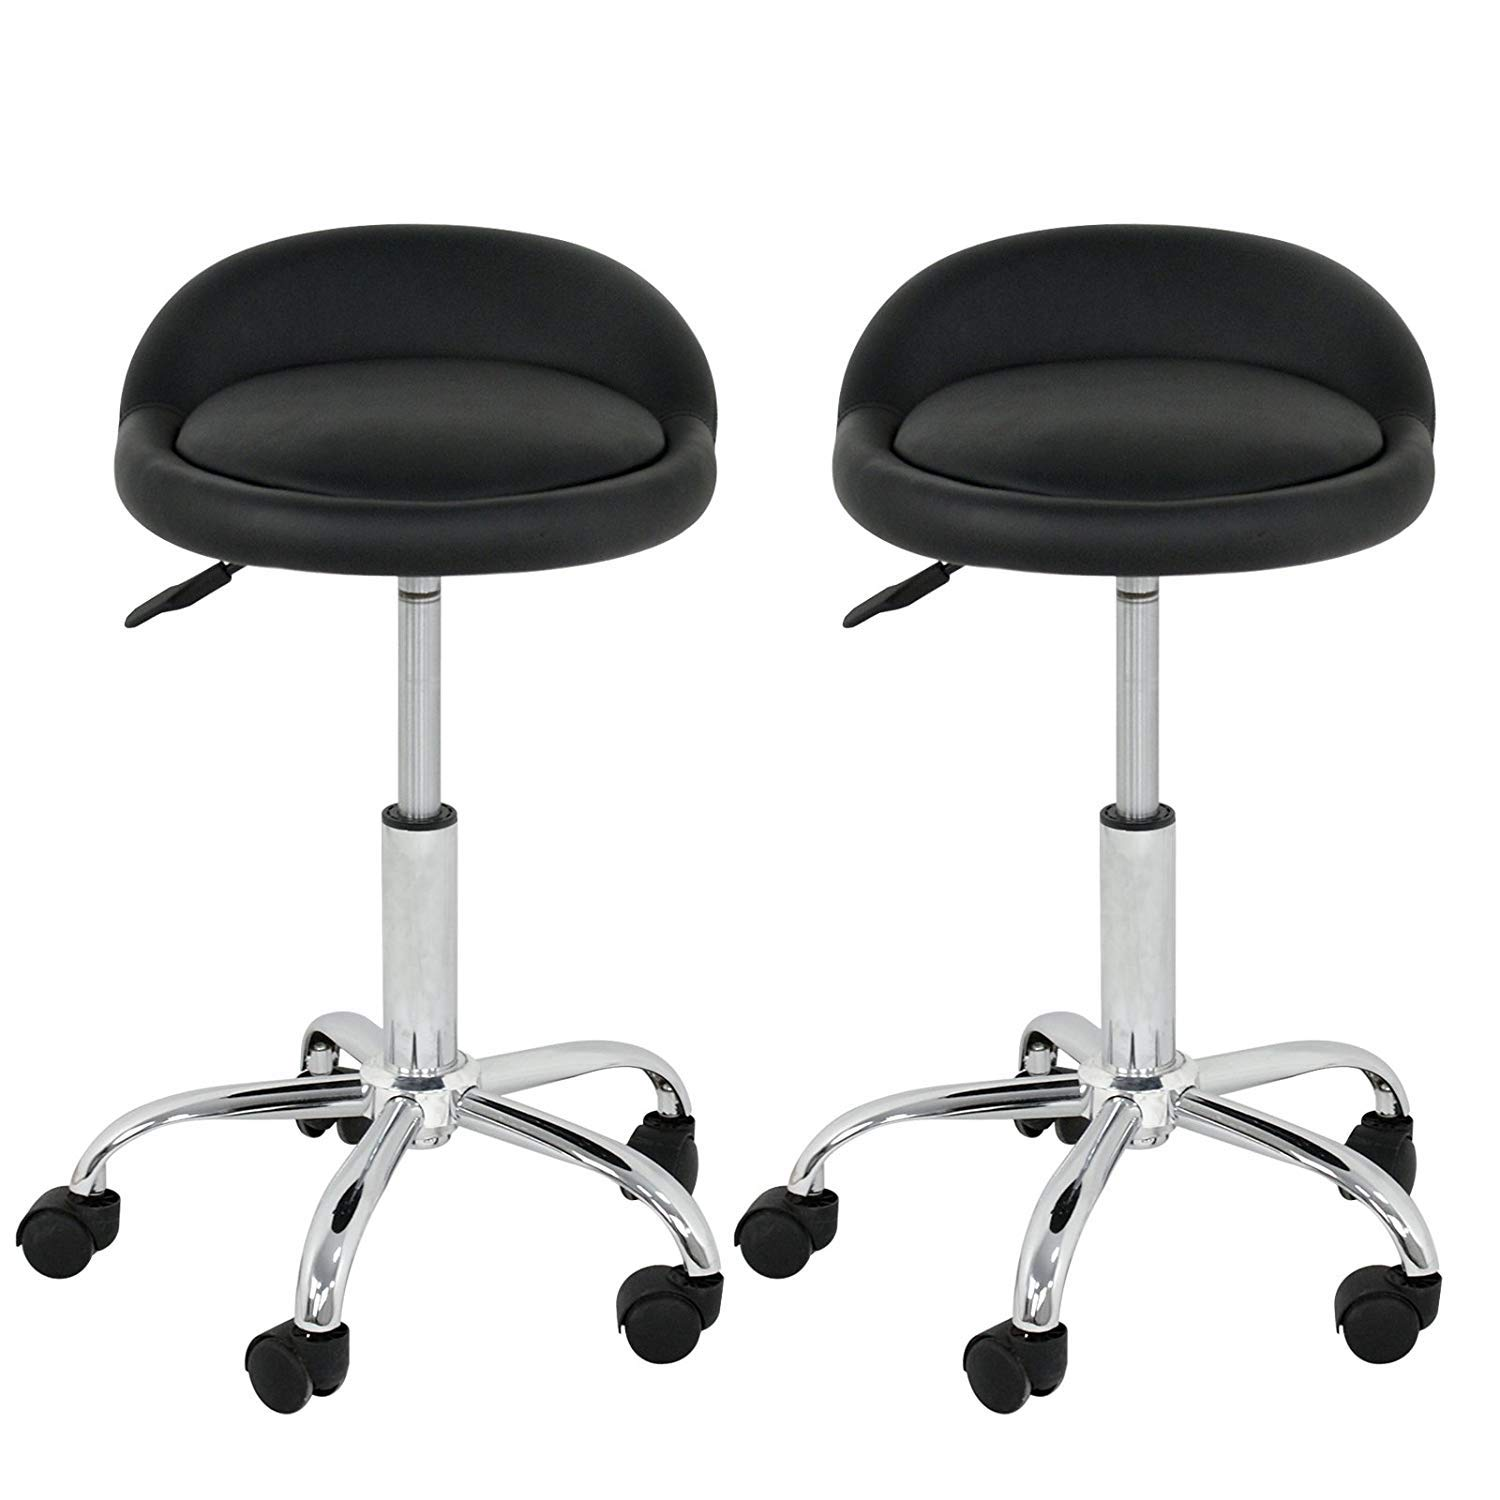 Nova Microdermabrasion Adjustable Hydraulic Rolling Swivel Salon Stool Chair Tattoo Massage Facial Spa Stool Chair with Back Rest (PU Leather Cushion) (Black 2pcs)